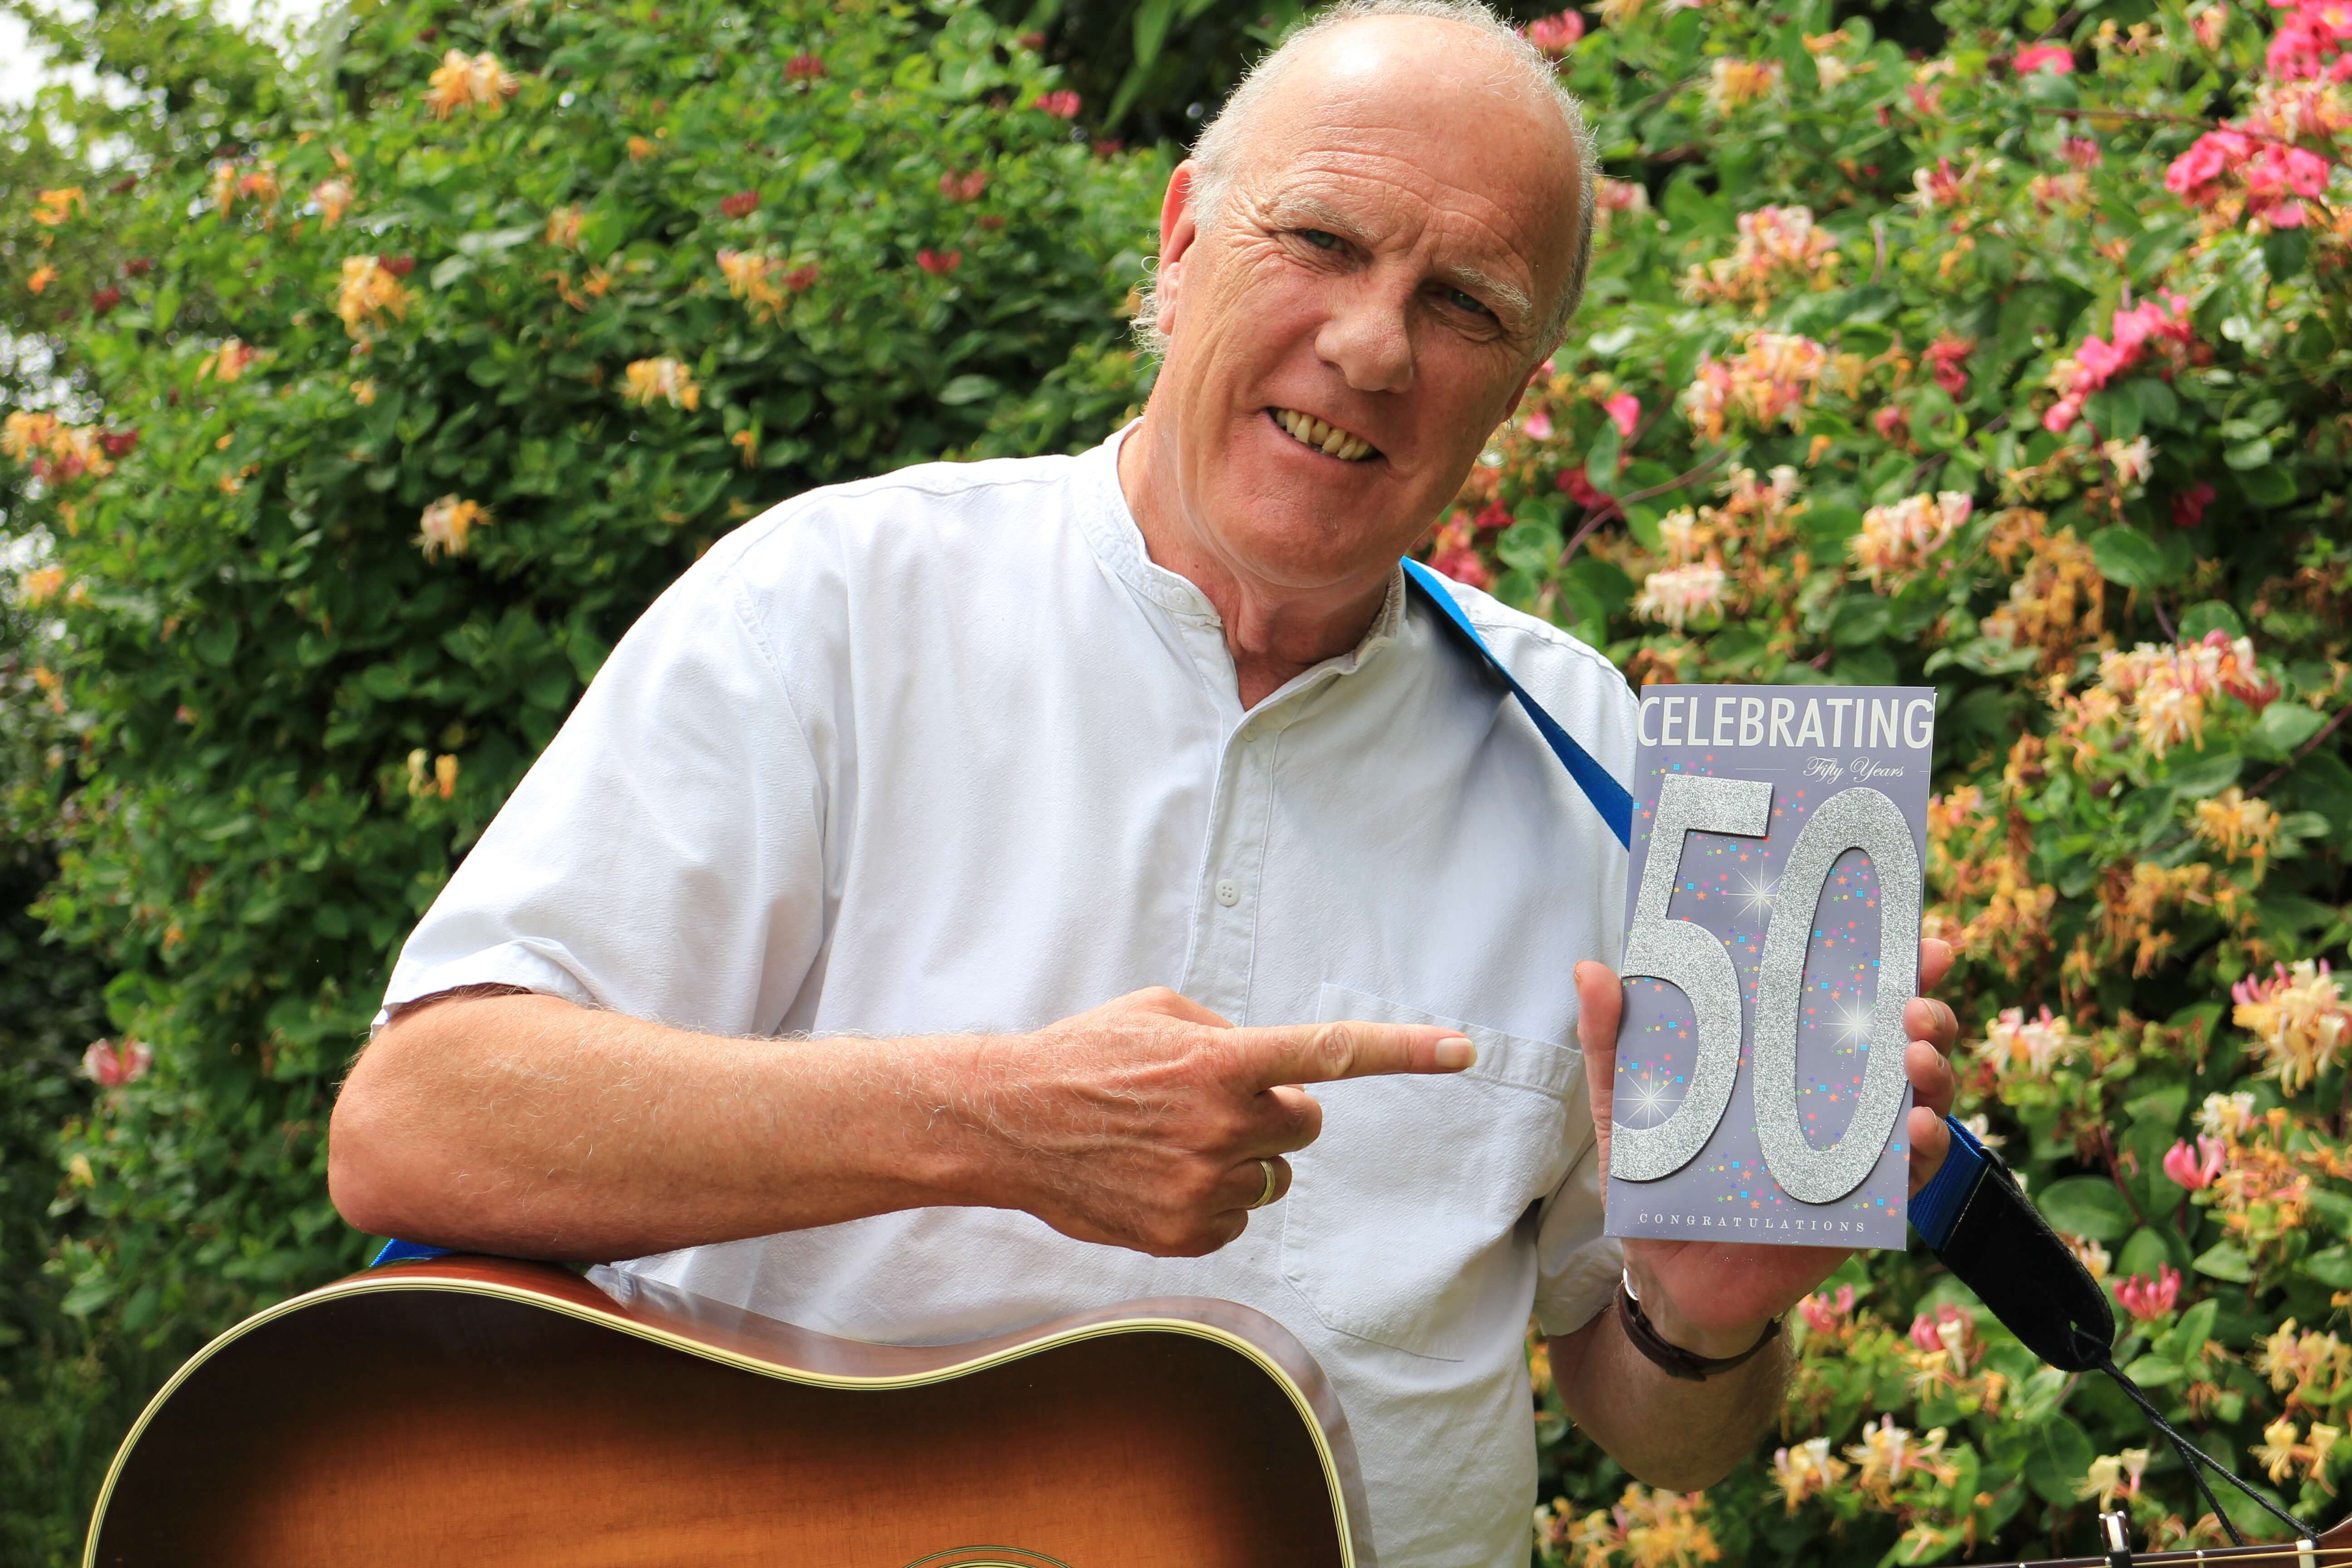 Richard Digance + special guest Eric Sedge